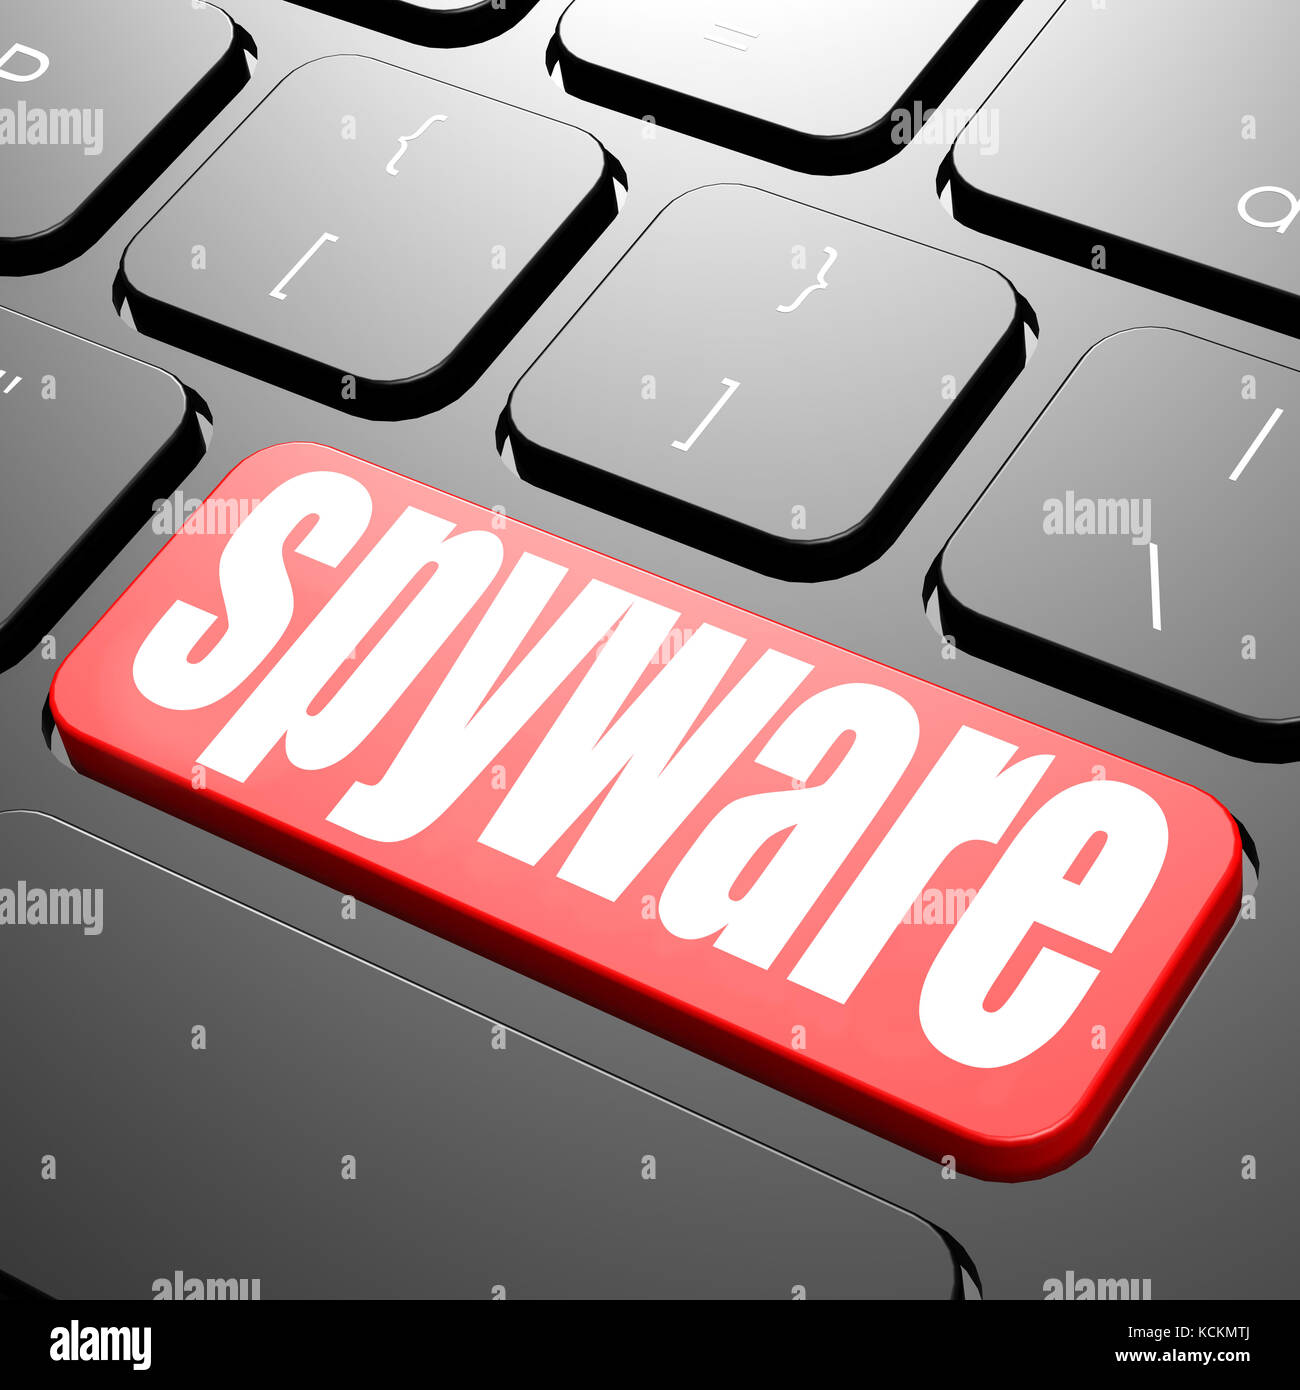 spyware used for